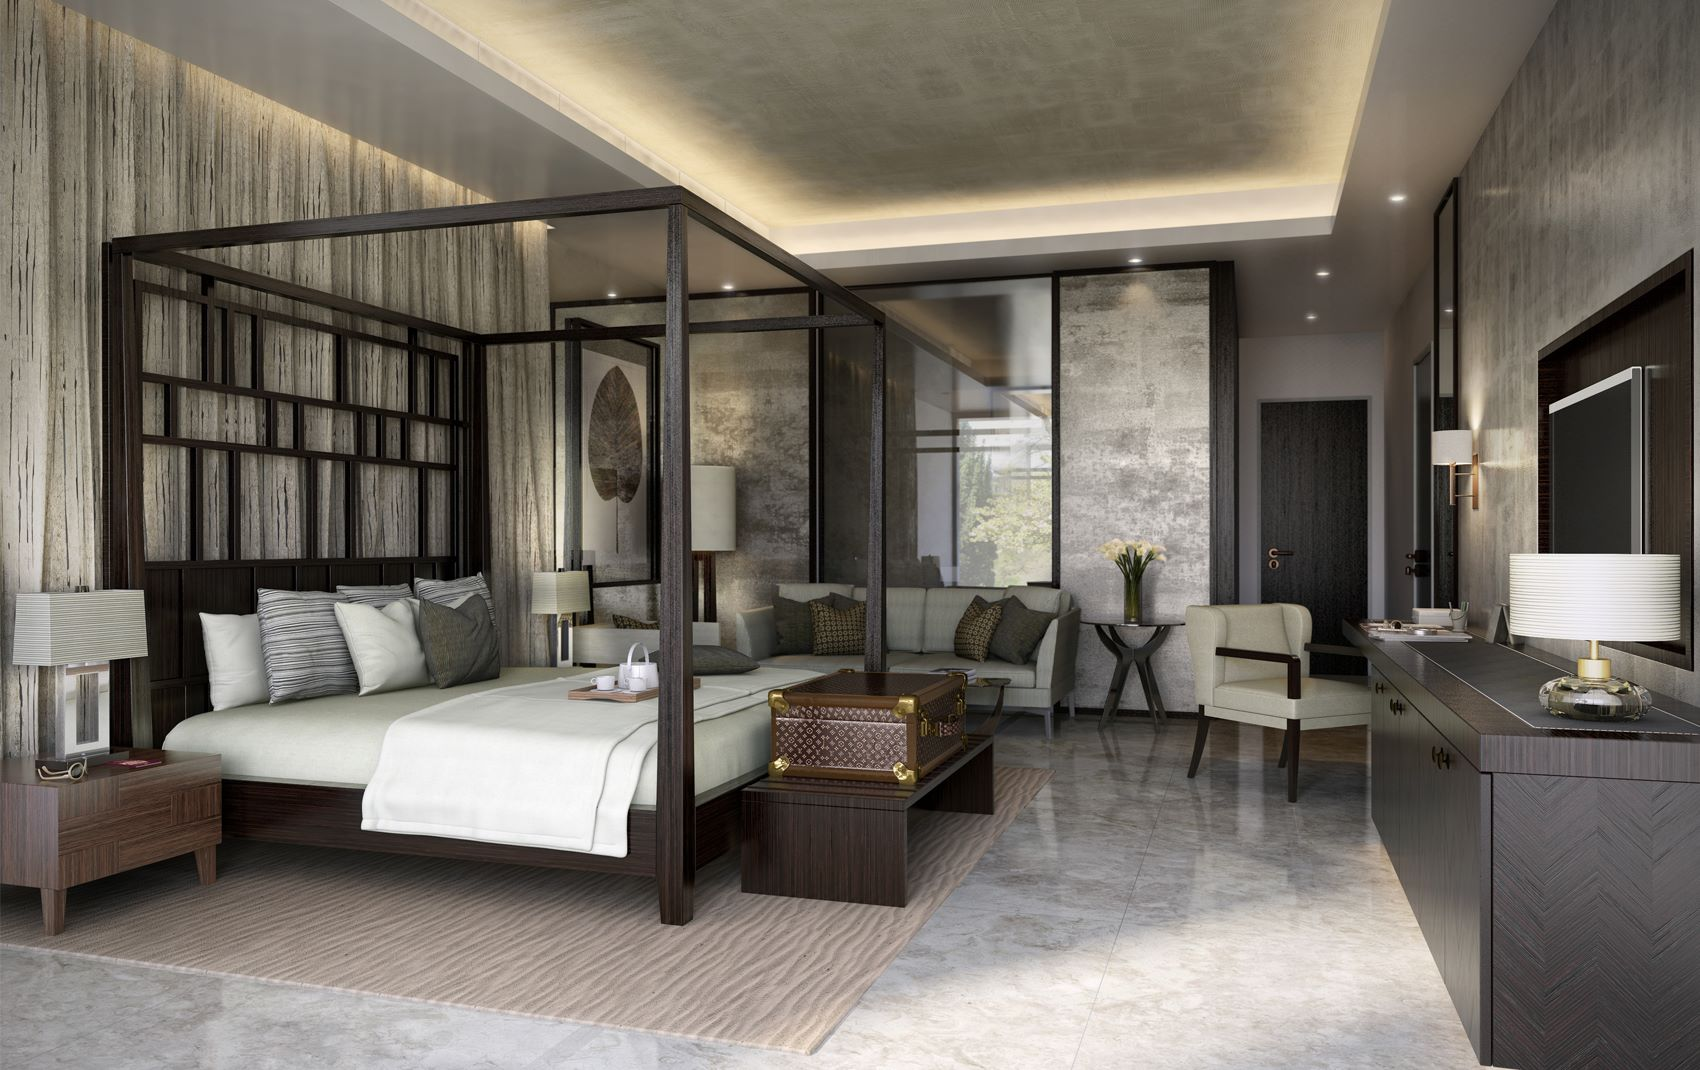 boutique hotel - commercial luxury interior